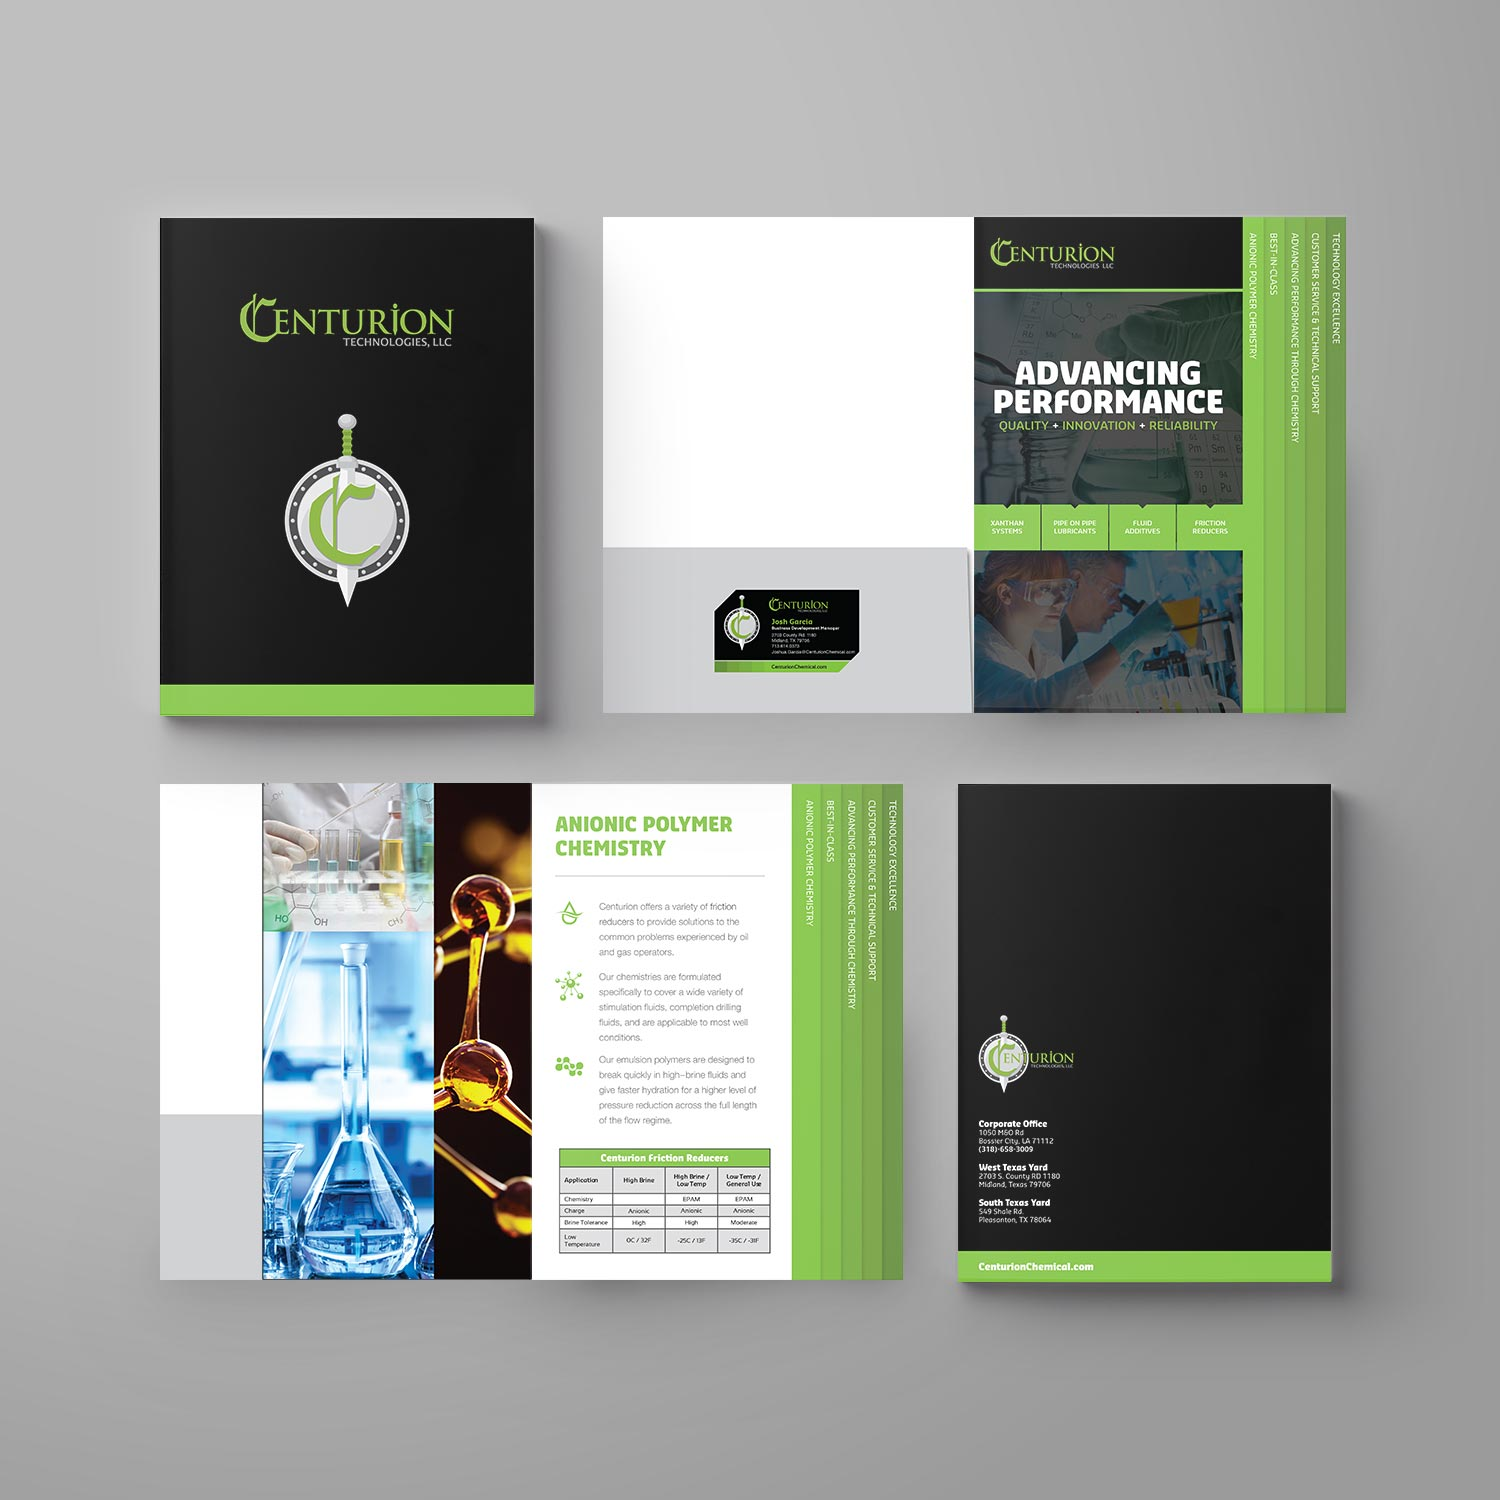 Design and printing of tabbed pocket presentation folder for Centurion.